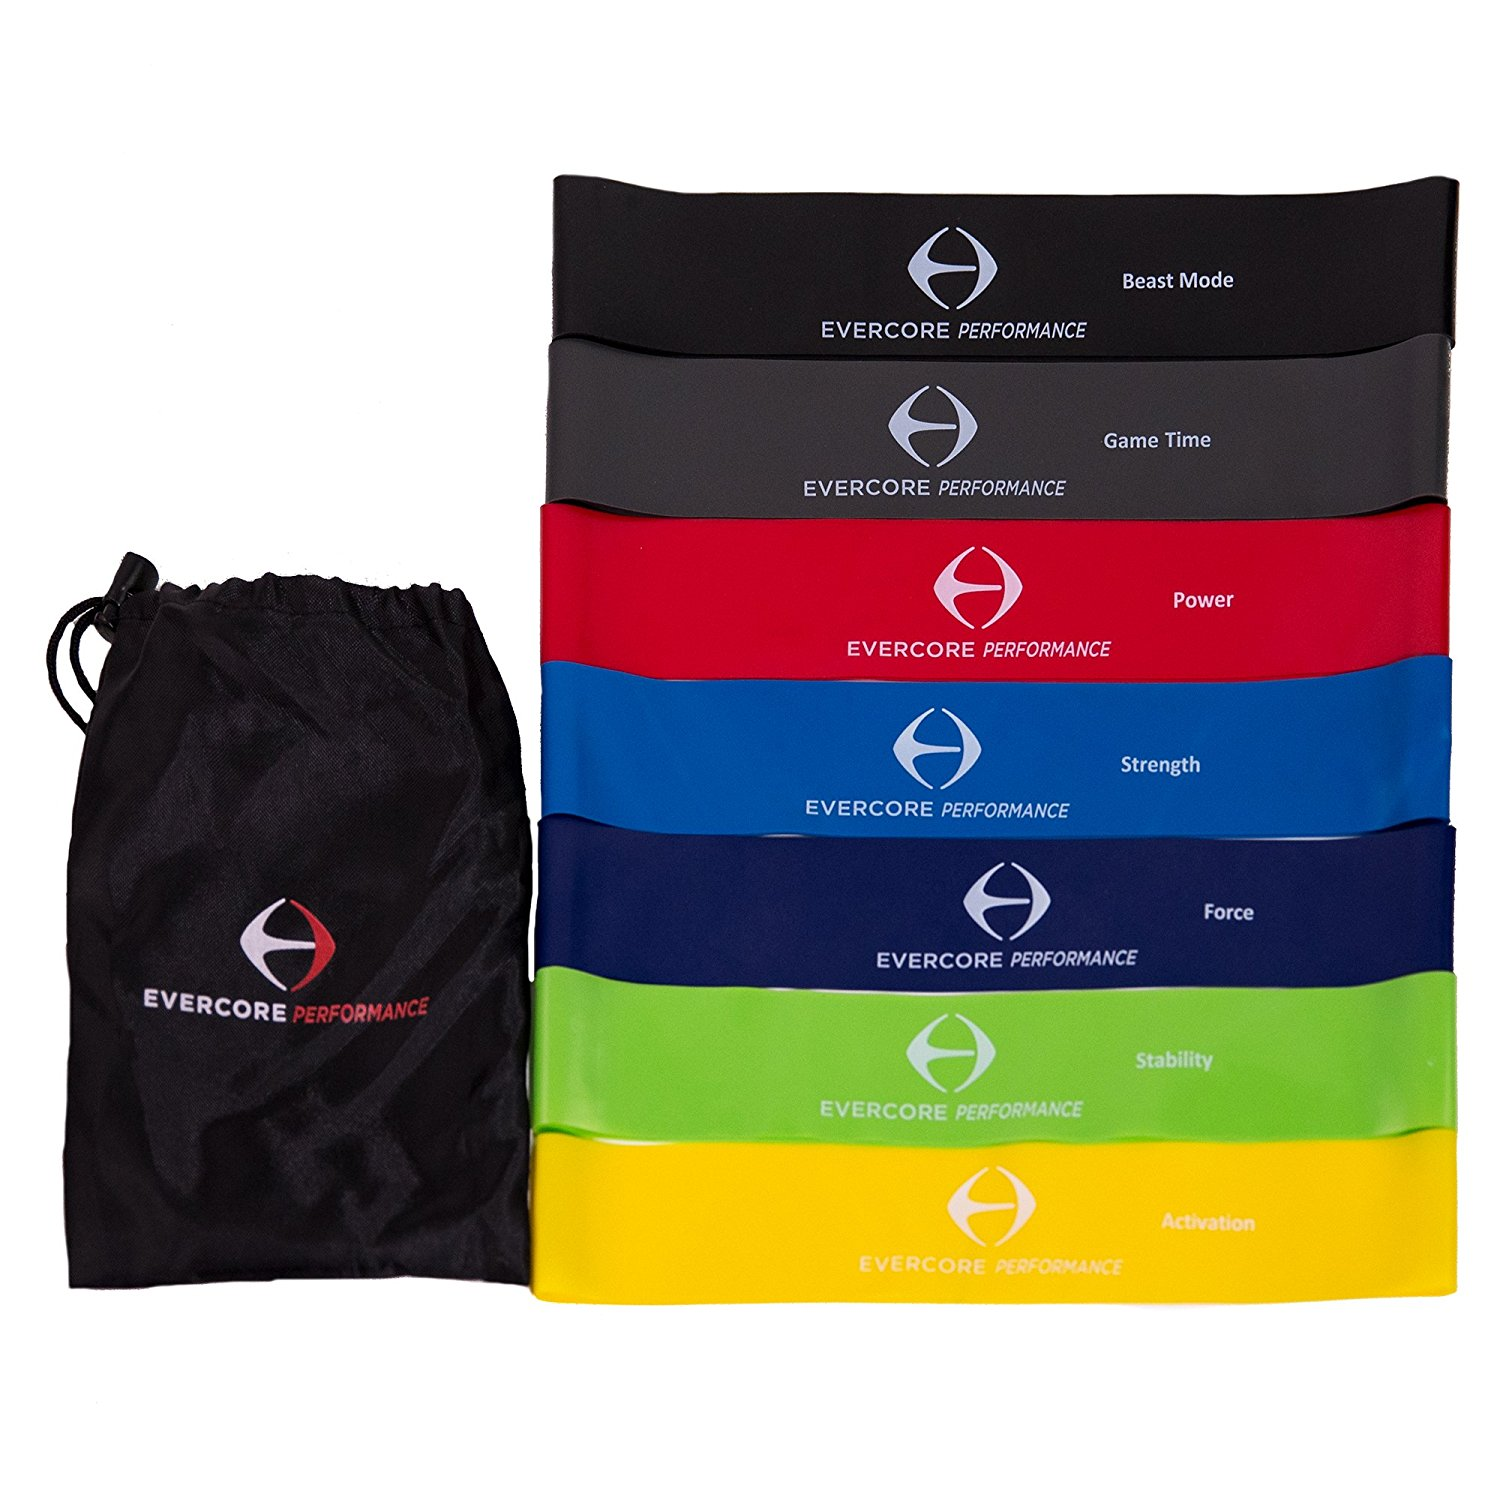 EVERCORE-Mini-Bands-Set-of-7-Resistance-Bands-Increase-Strength-Injury-Prevention-Rehab-after-Injury-Resistance-Ex-B072BW9RZ6